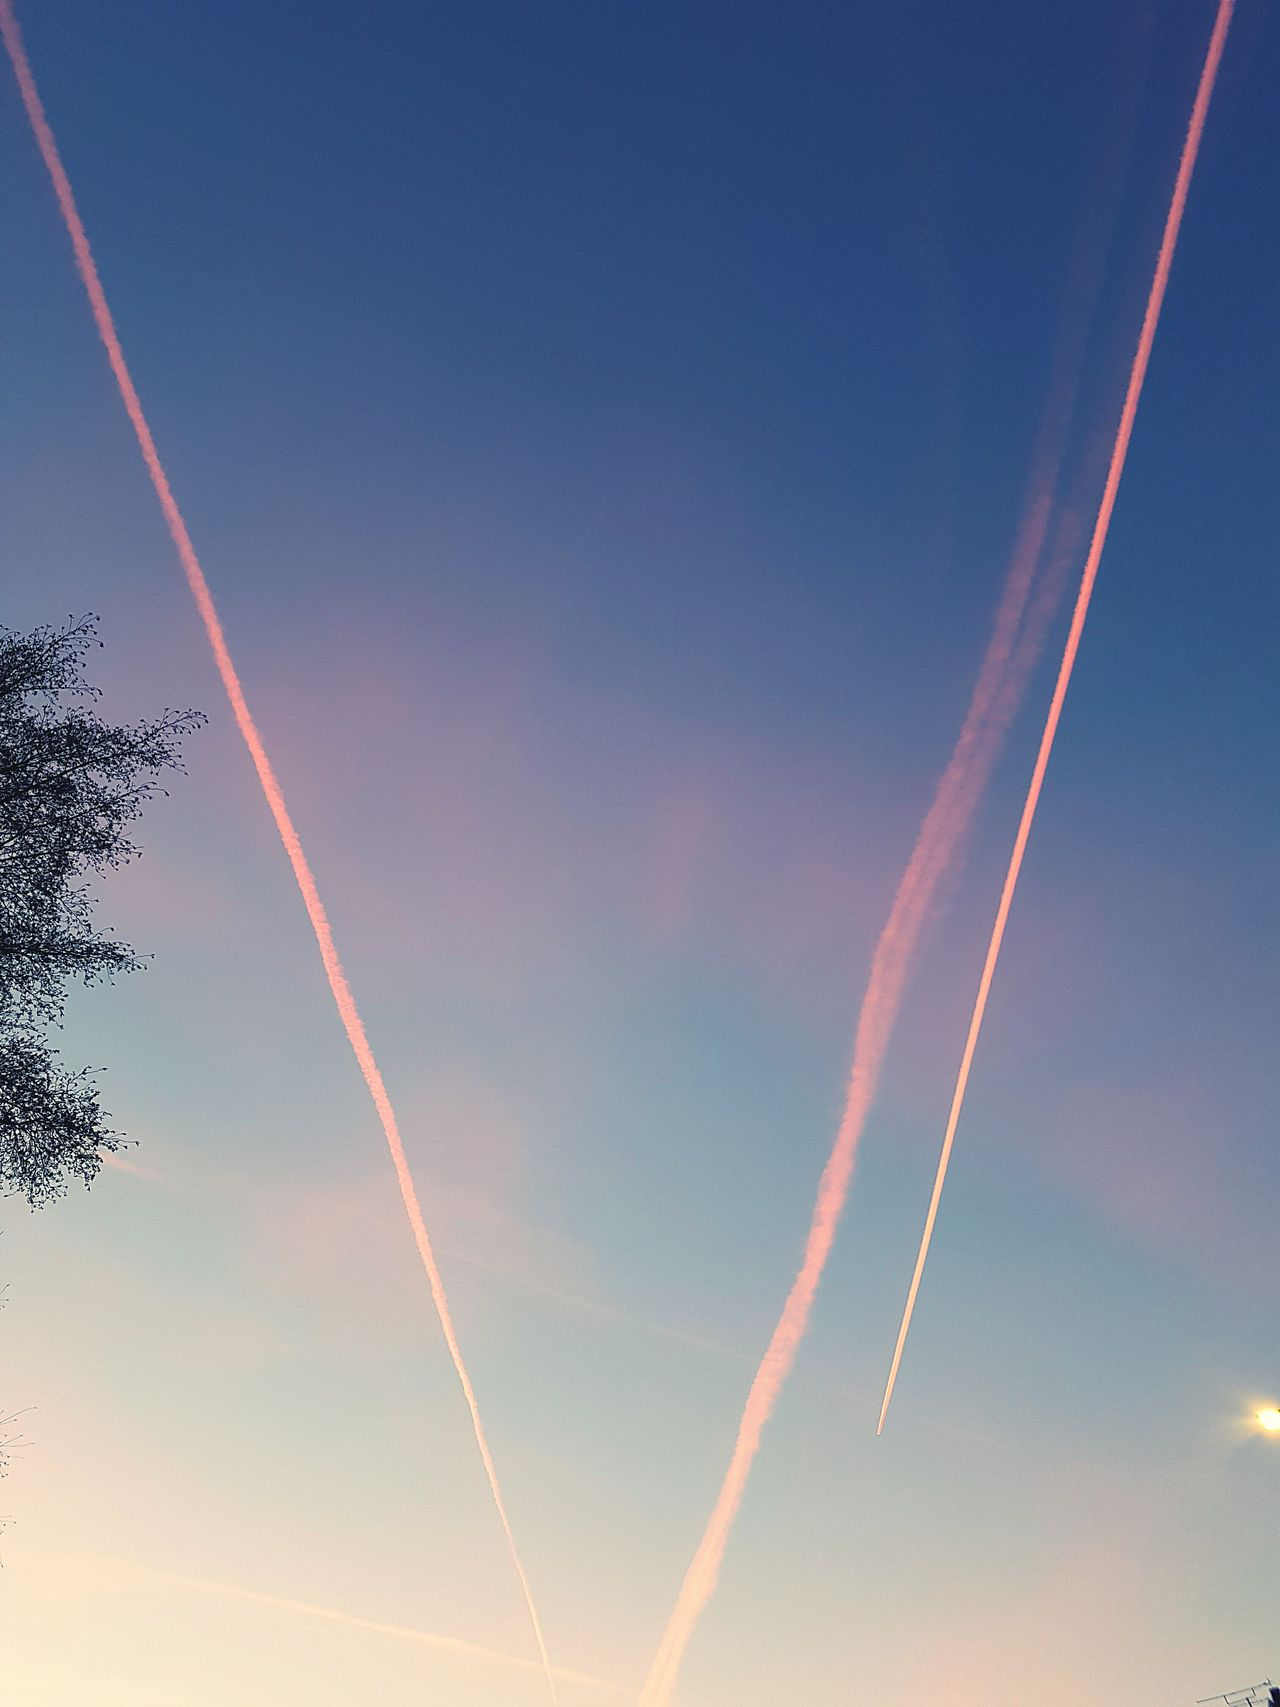 Planes fly over at dusk in London. Flying Airplane Motion No People Speed Outdoors Sky Multi Colored Dusk Sky Magic Hour Planespotting Looking Up Blue Flight Path Flight Plane Aeroplane Night Sky Pink Sky EyeEmNewHere EyeEmNewHere